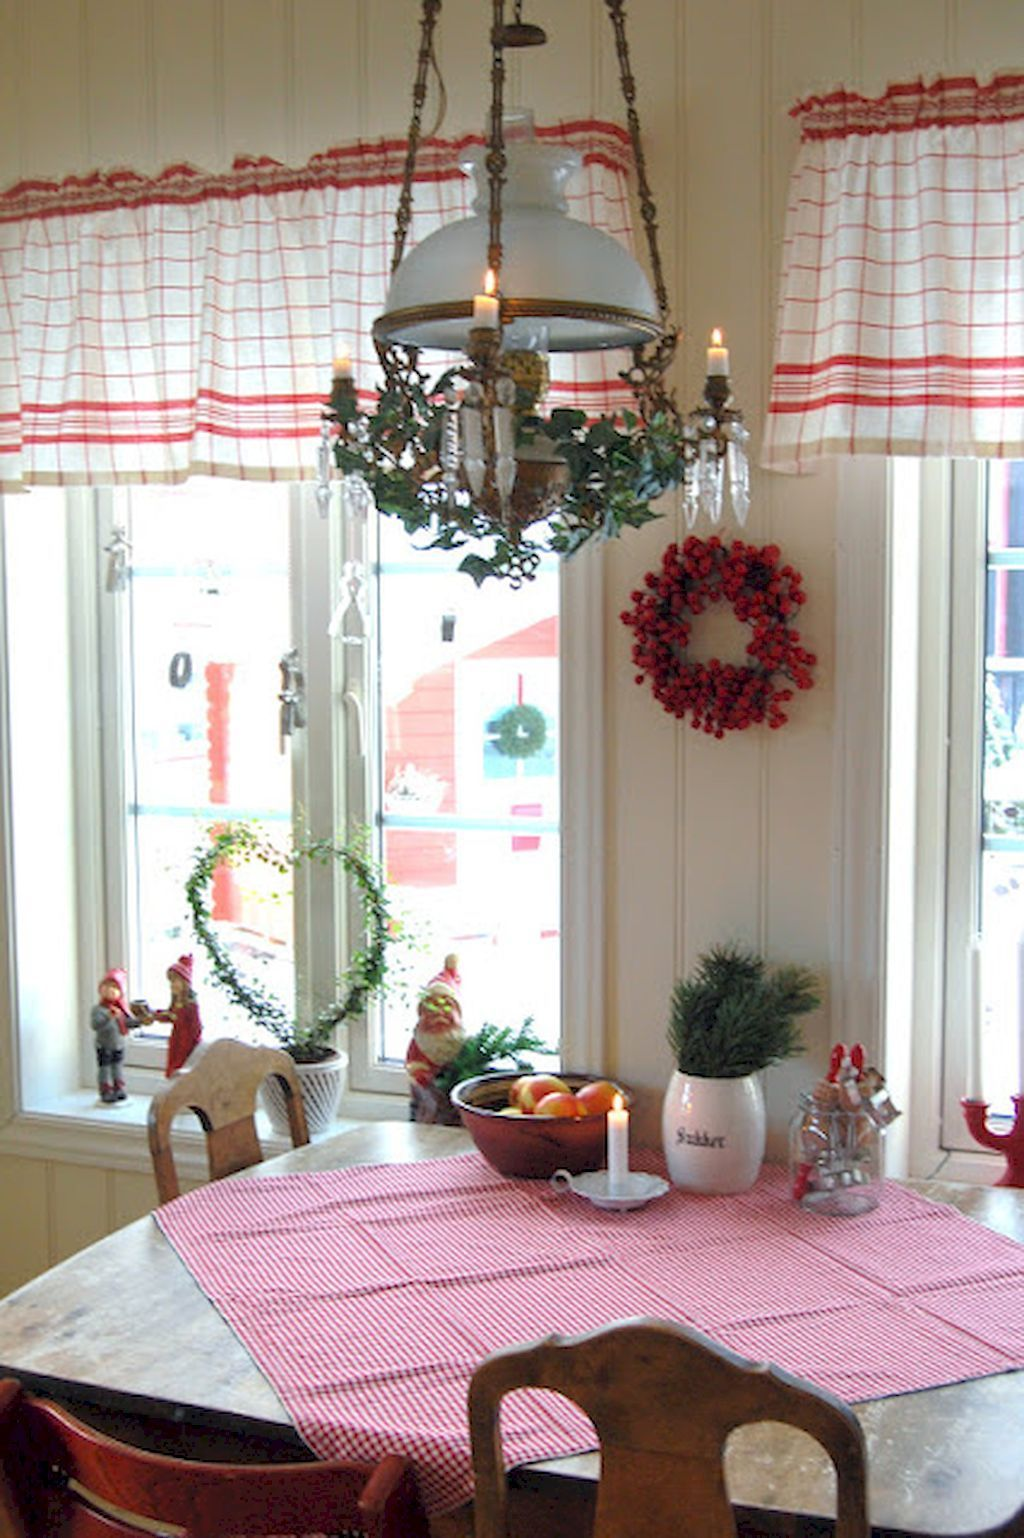 Cool 60 Granny Chic Ideas For First Apartment Decorating On A